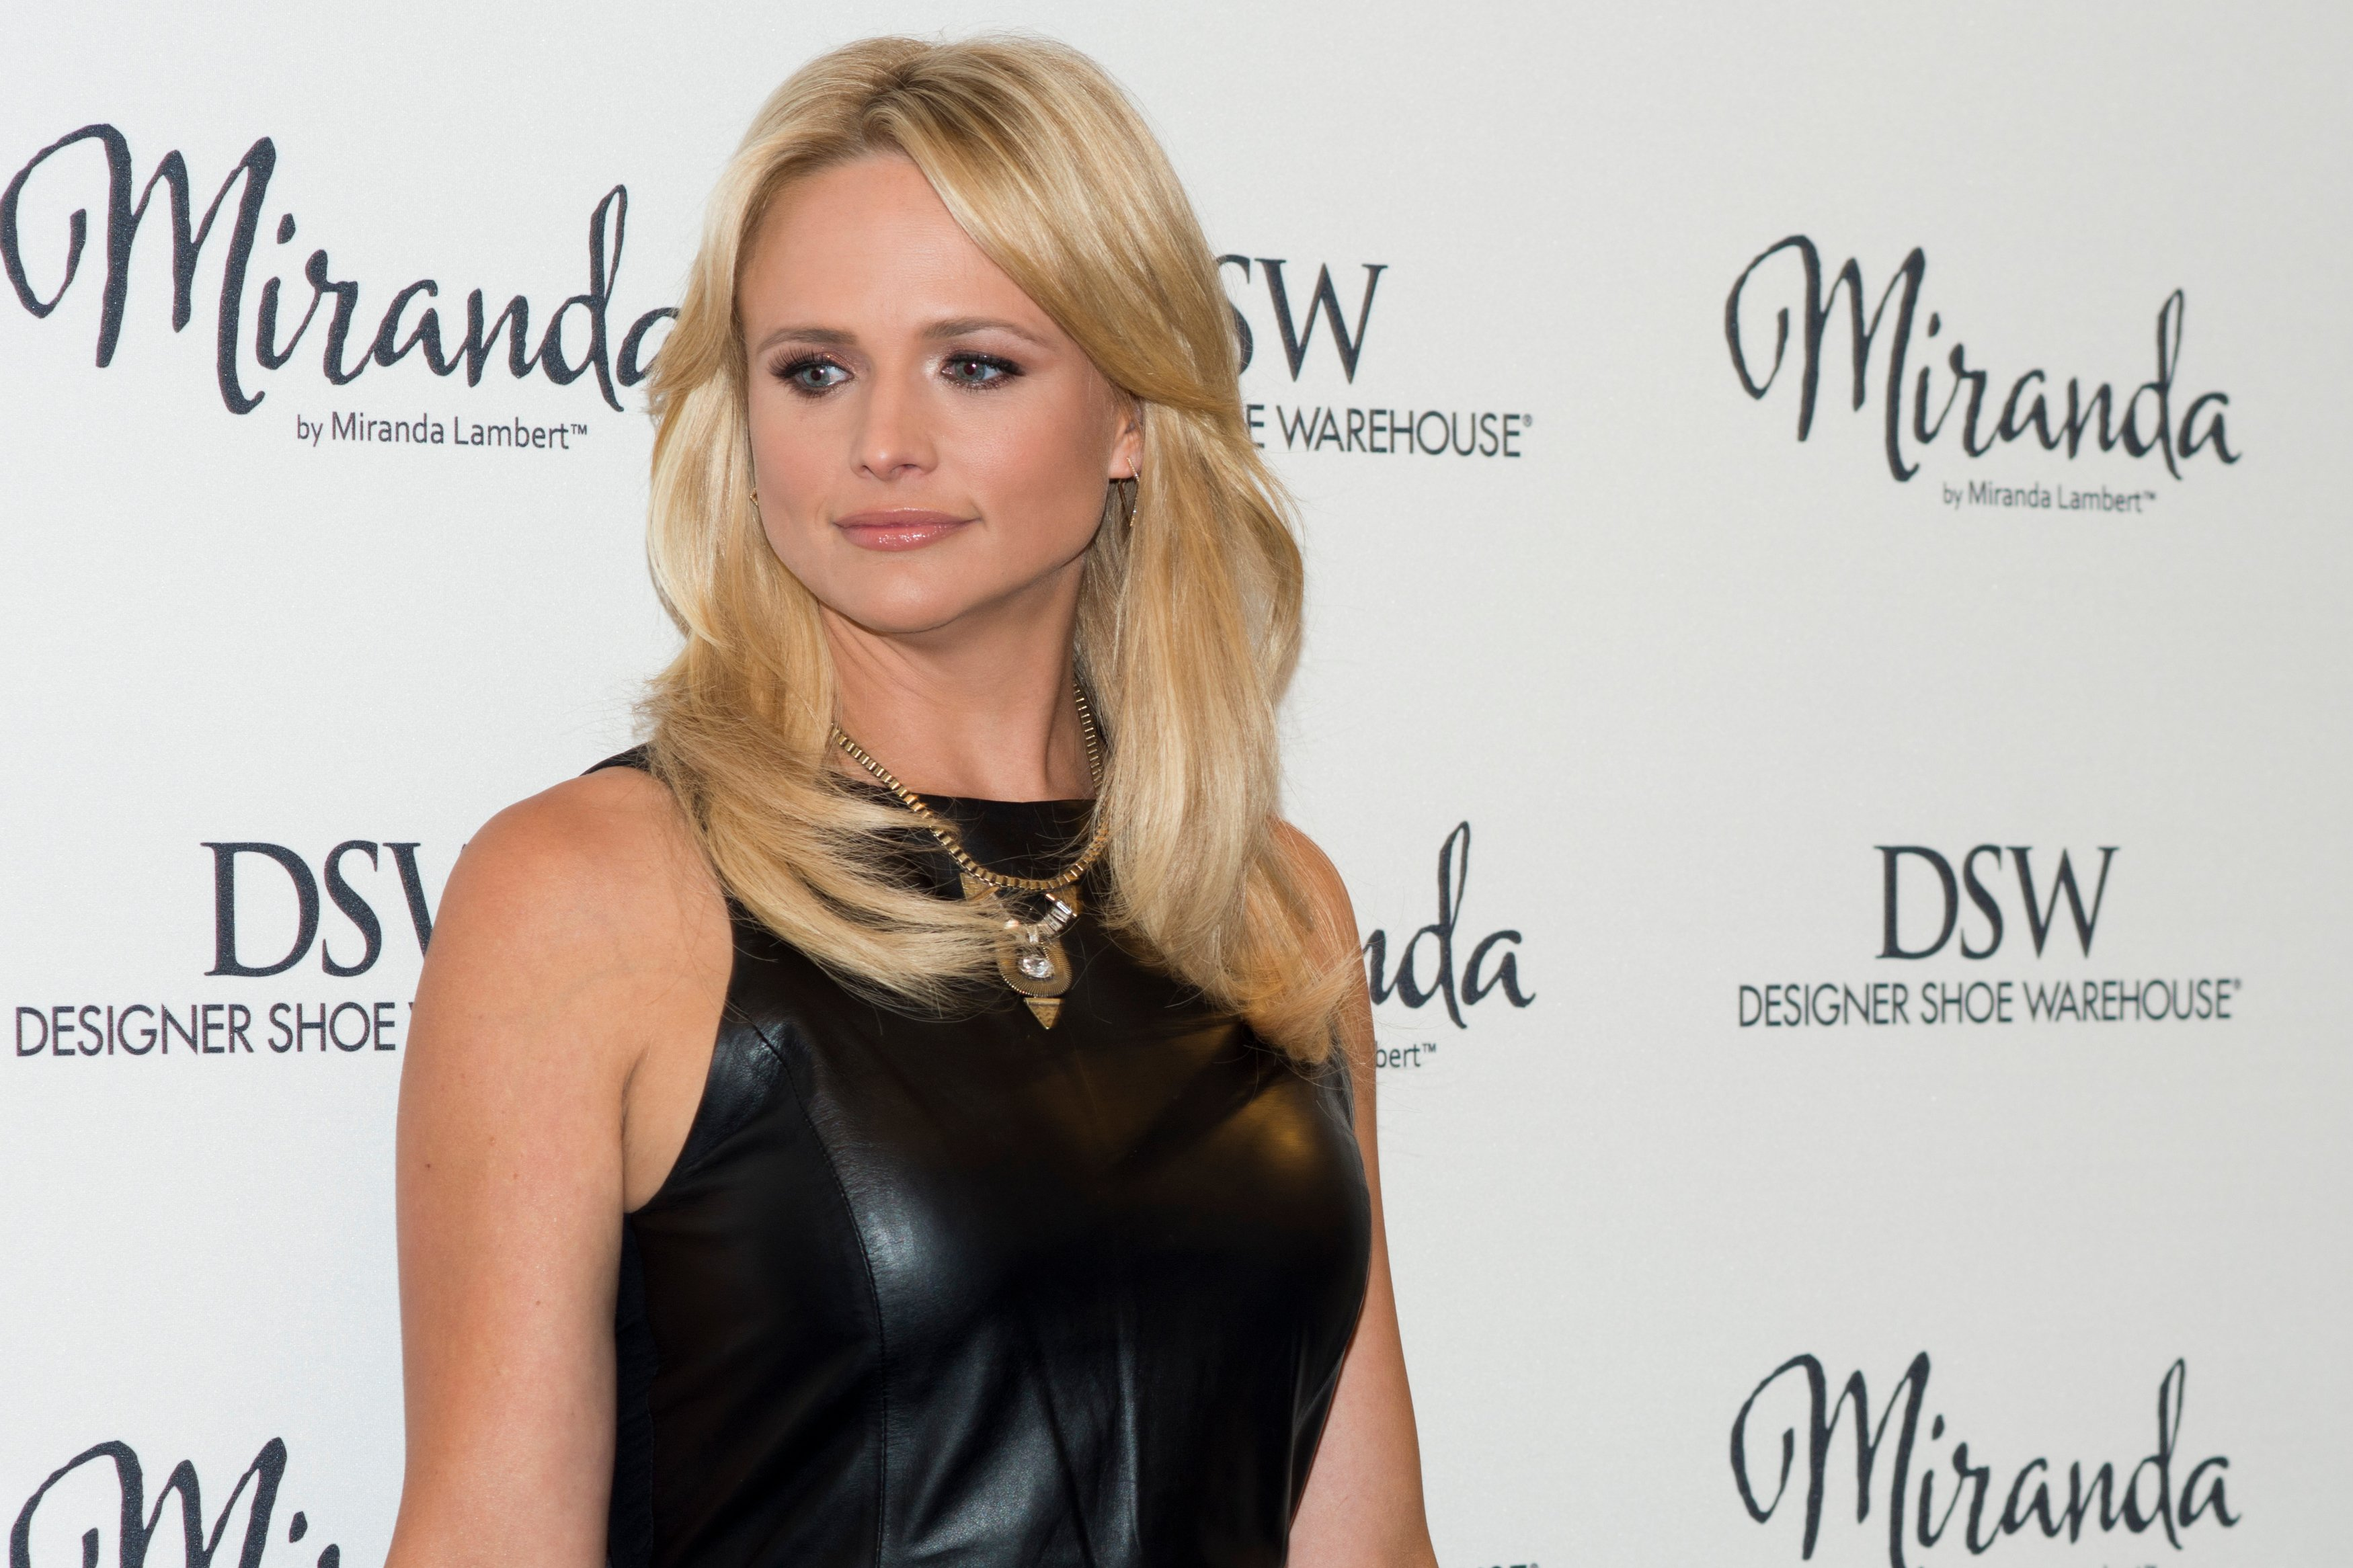 Miranda Lambert poses for a portrait as she promotes her new shoe collection at DSW Designer Shoe Warehouse | Getty Images / Global Images Ukraine